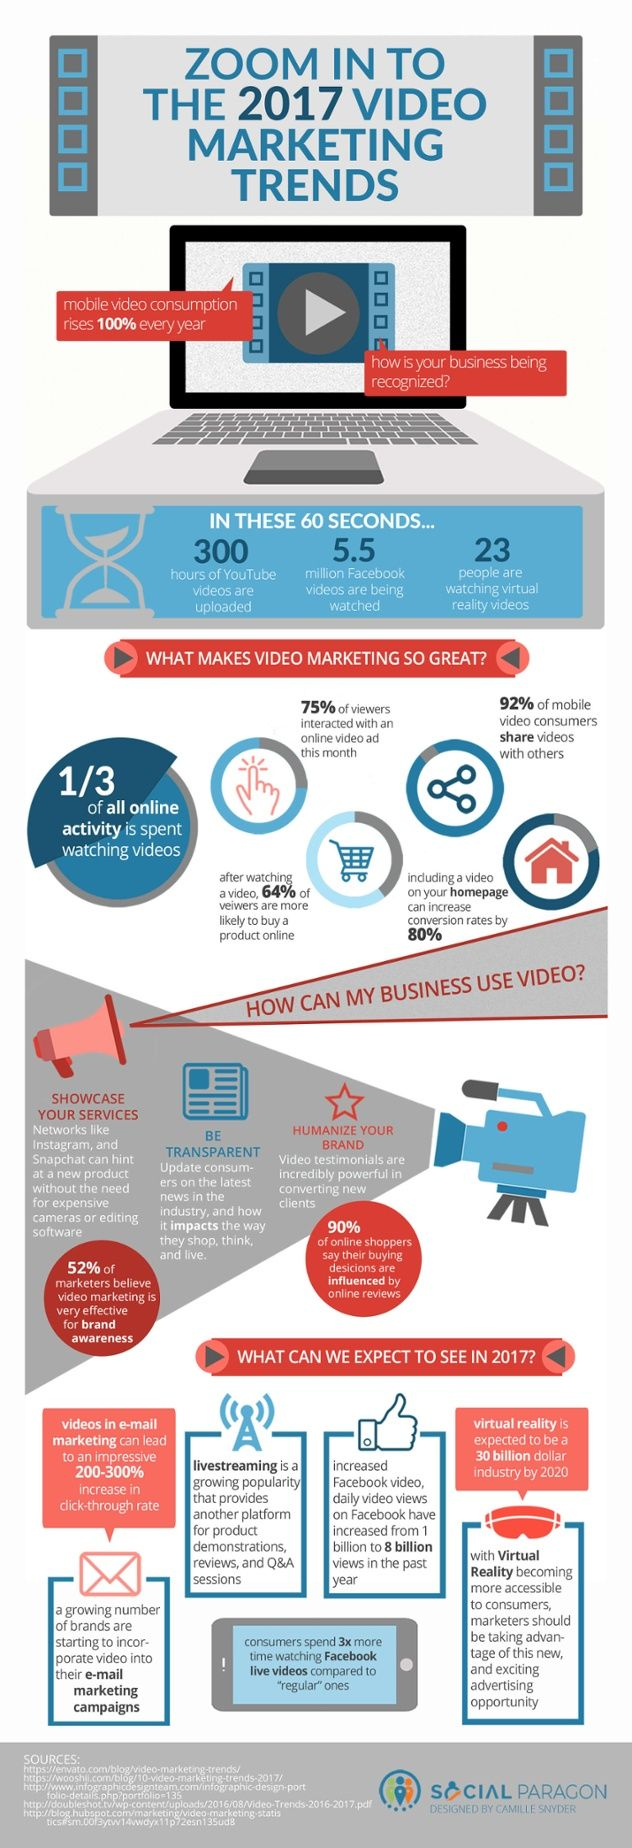 Zoom In To The 2017 Video Marketing Trends - Infographic.jpg